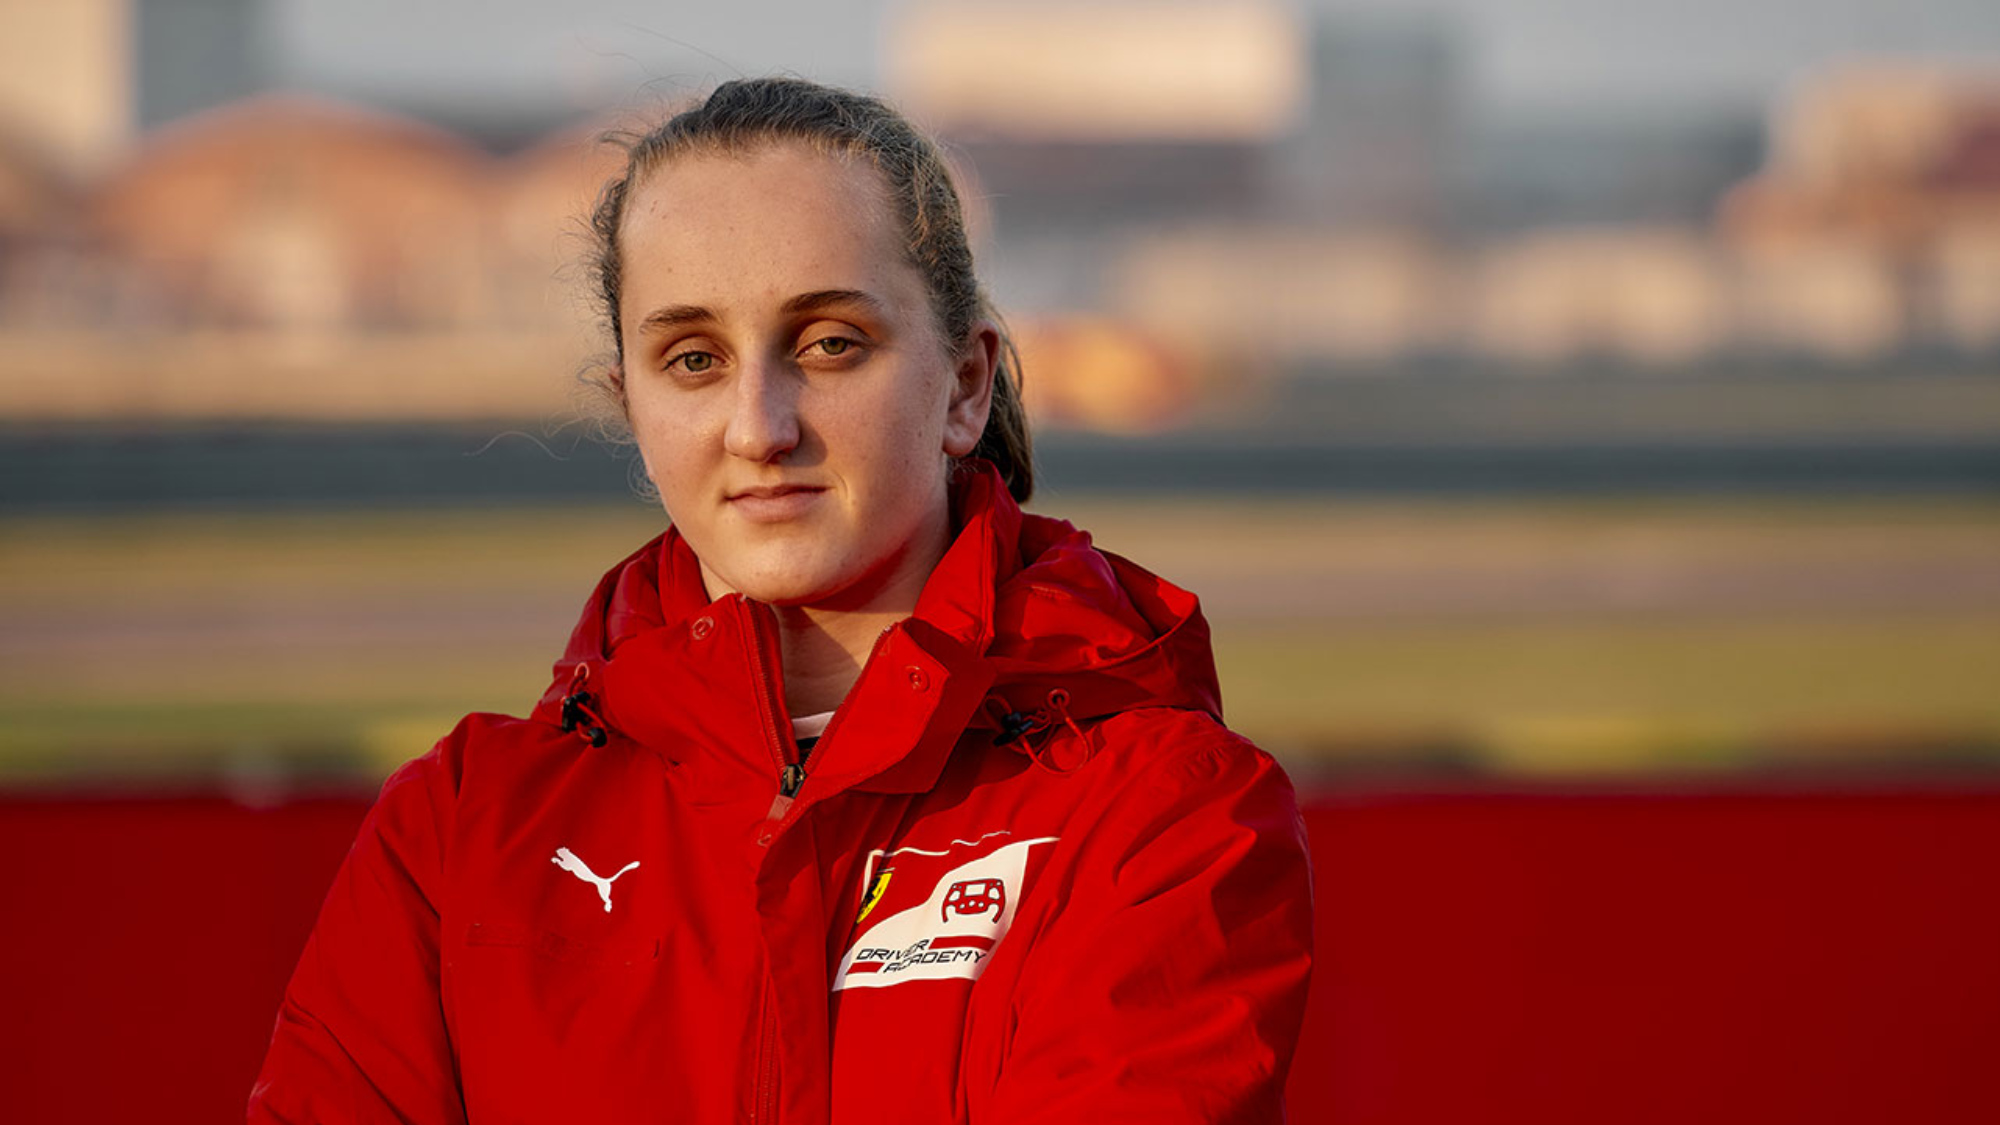 Why Maya Weug has a shot at F1 as Ferrari's first female Academy driver